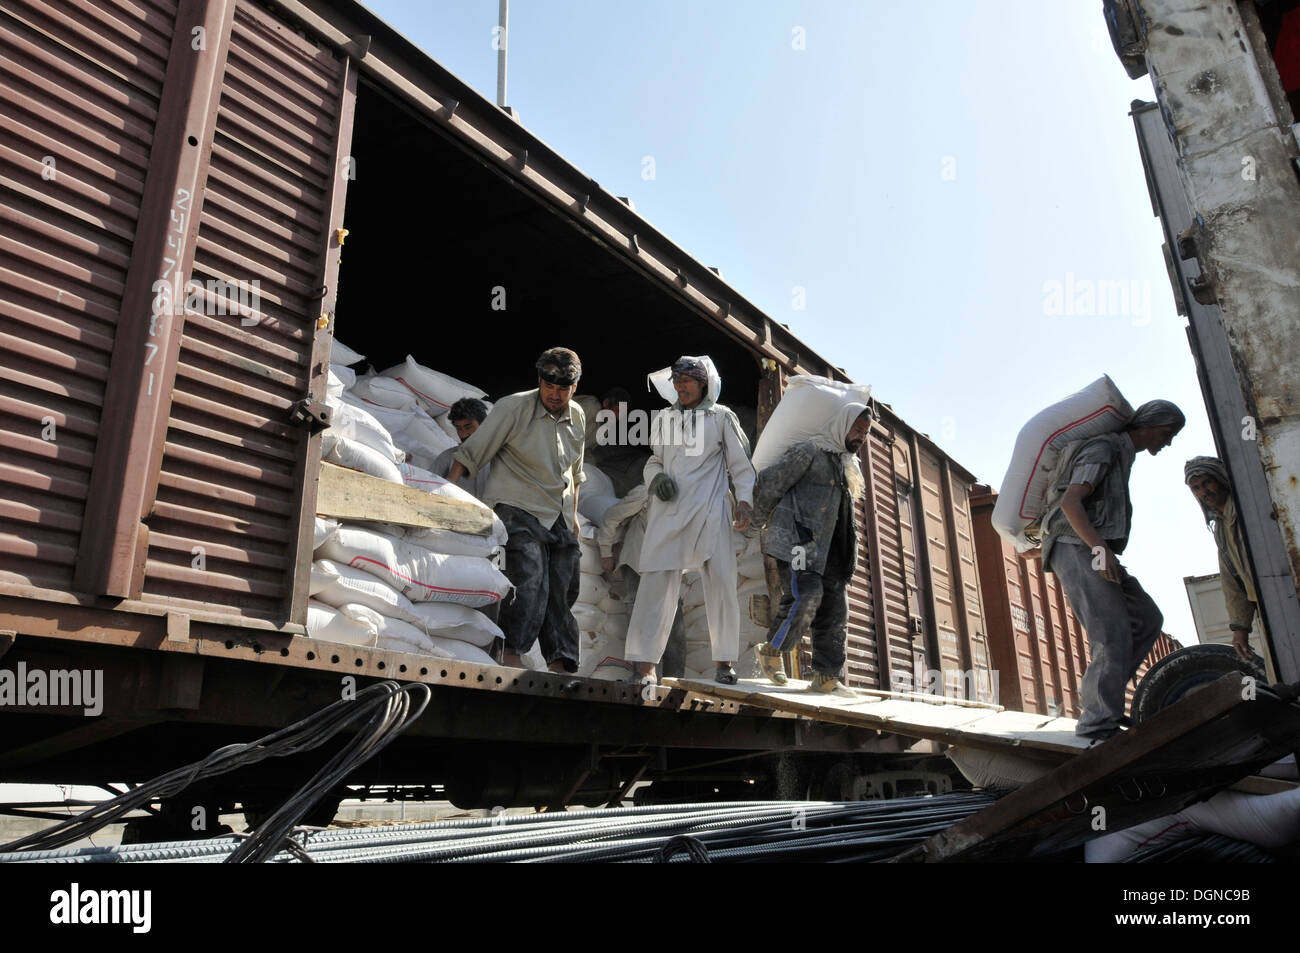 Rail Port 4, Niababad, Afghan laborers begin the manually intensive process of offloading 100 pound plus bags of baking flour from a boxcar onto waiting semi trucks for shipment to Afghan markets. The flour was imported through Uzbekistan. - Stock Image